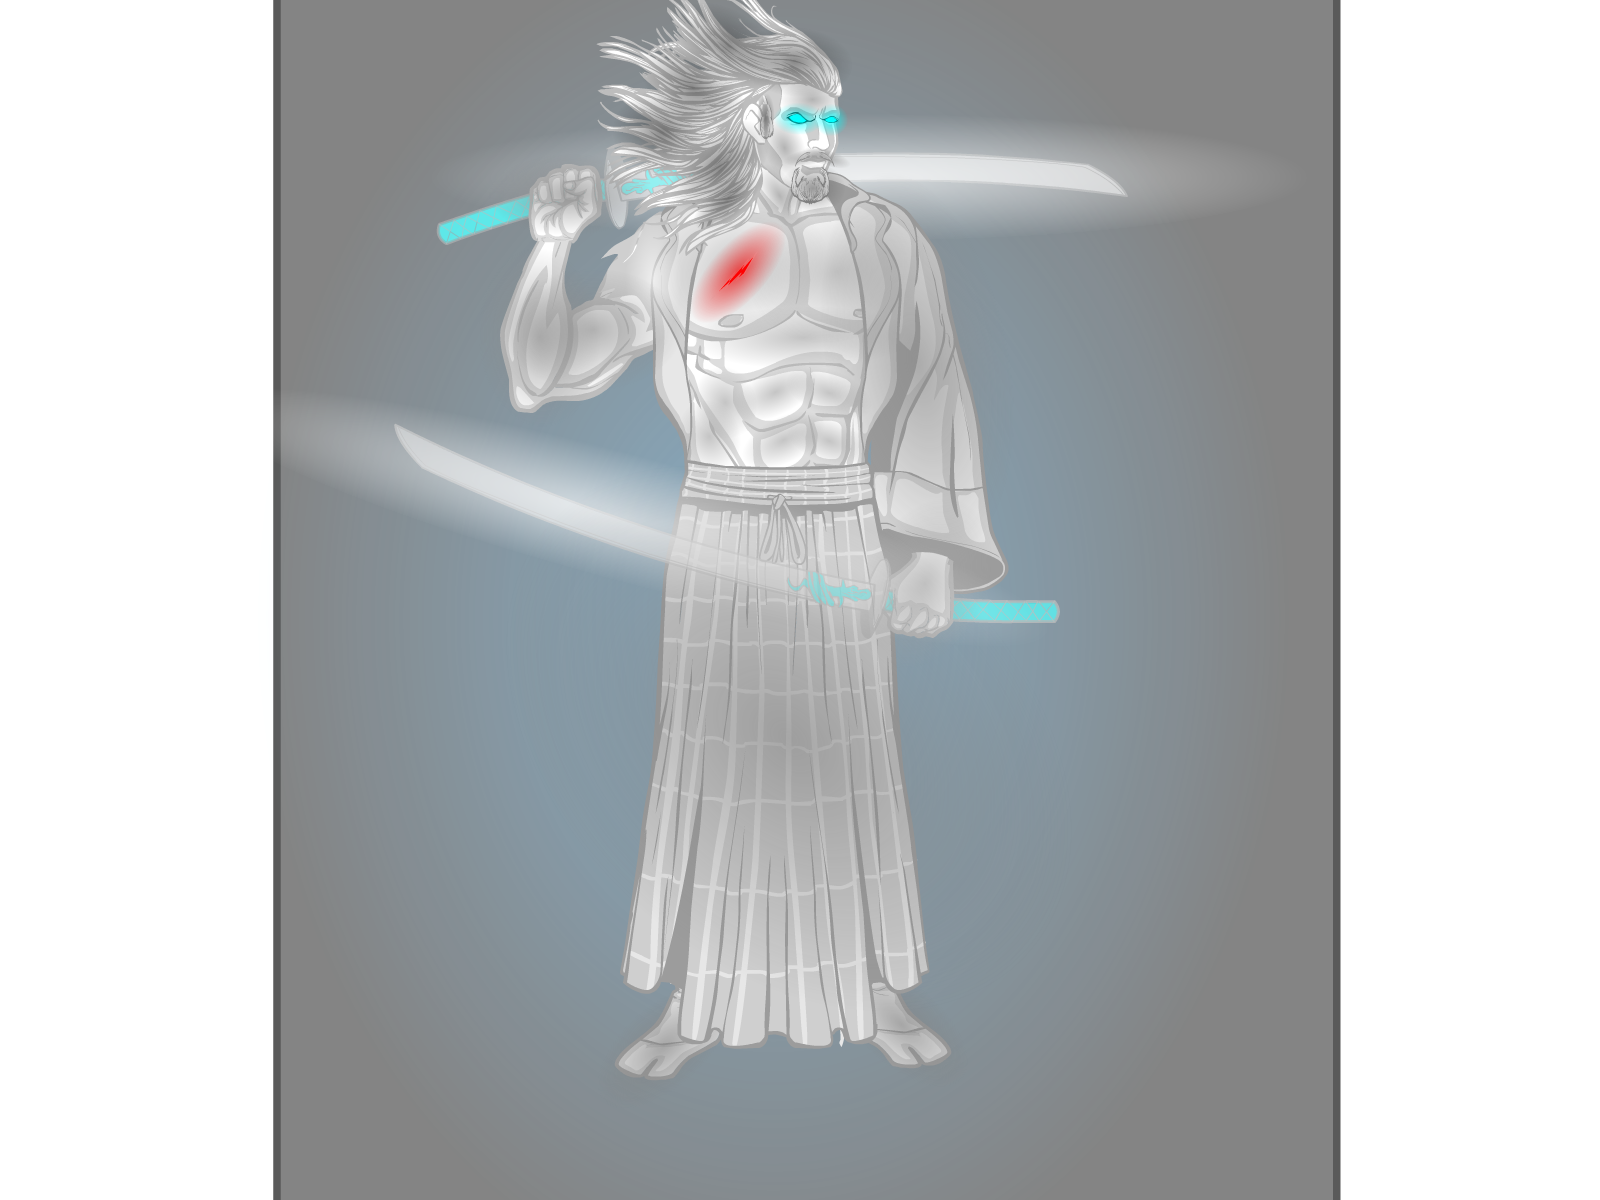 http://www.heromachine.com/wp-content/legacy/forum-image-uploads/nha247/2012/04/NHA247-SamuraiGhost.PNG.png